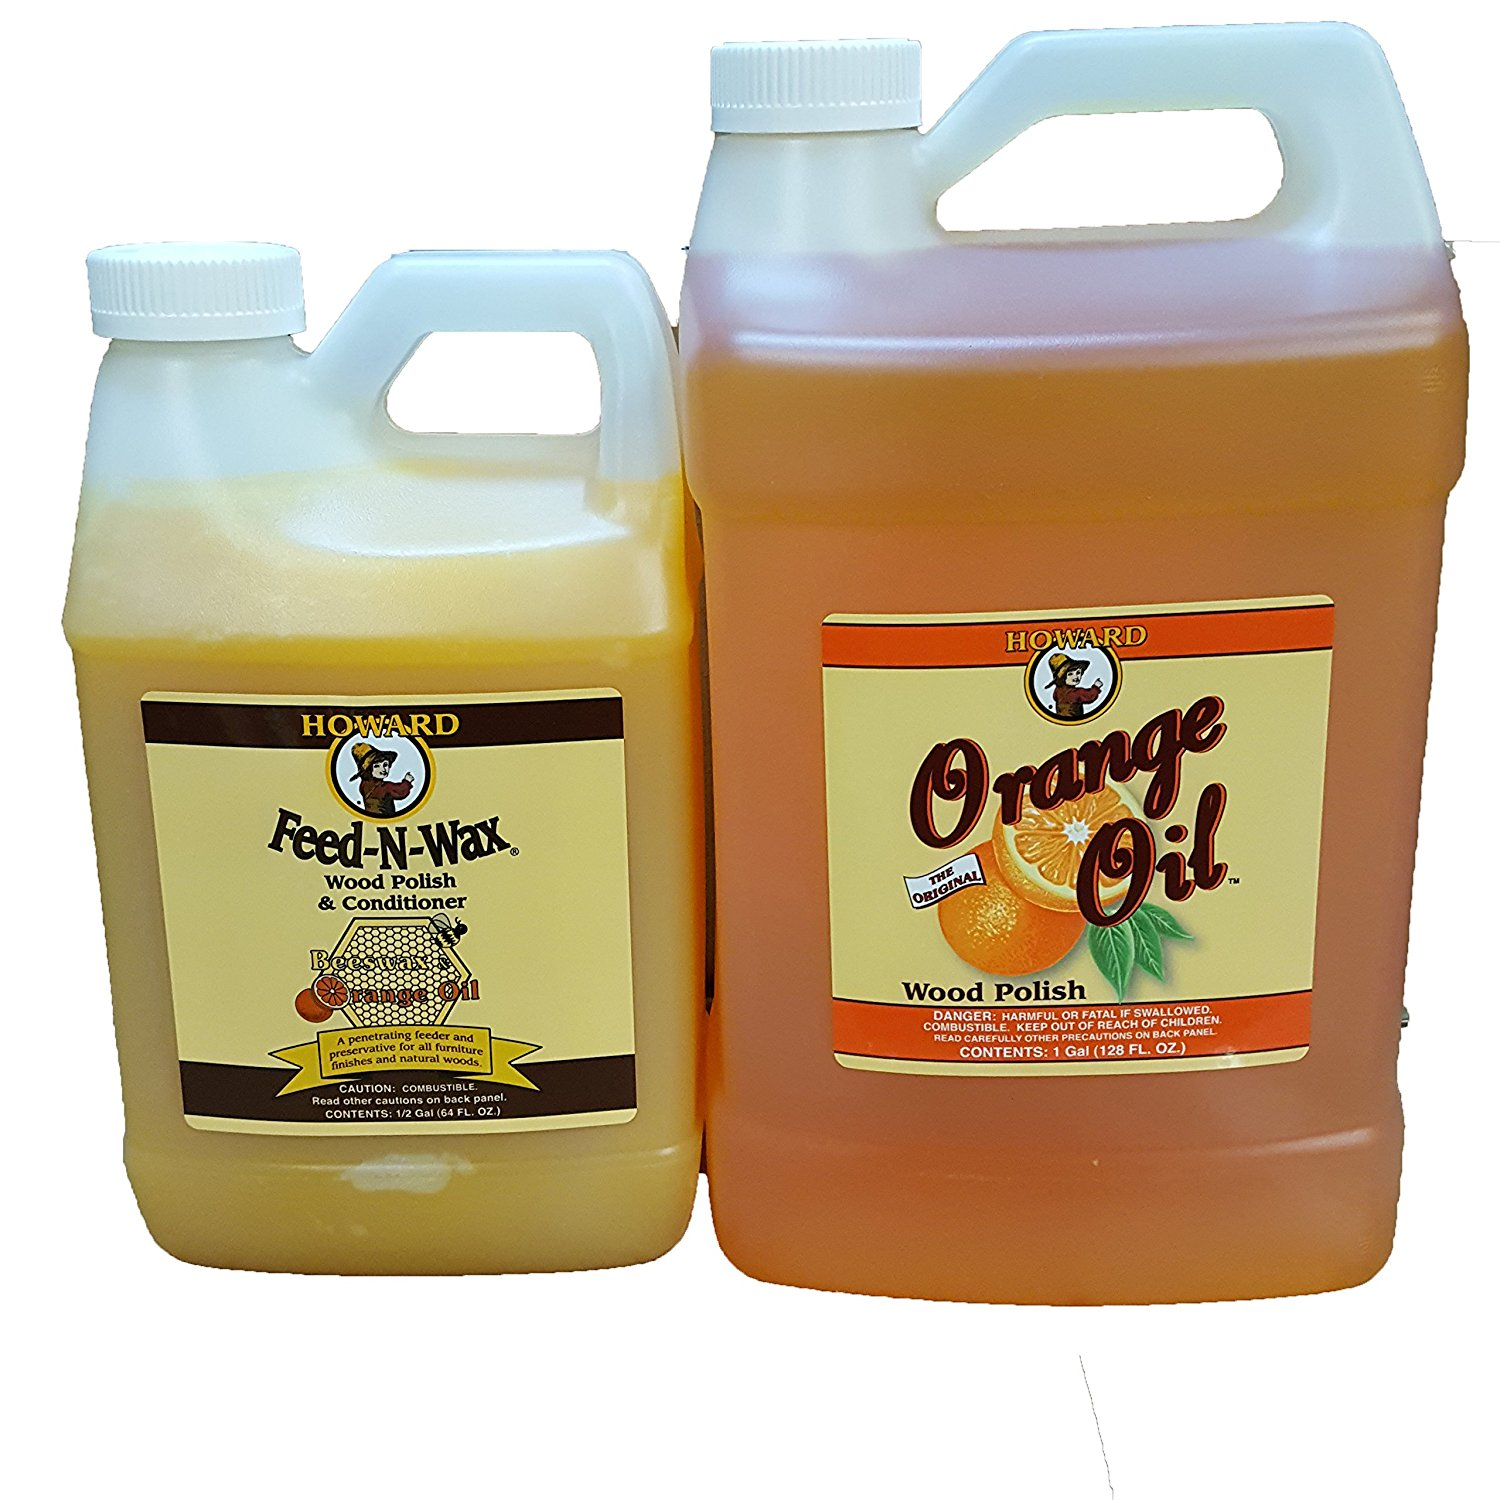 Amazing Cheap Orange Wood Cleaner Find Orange Wood Cleaner Deals On Interior Design Ideas Helimdqseriescom